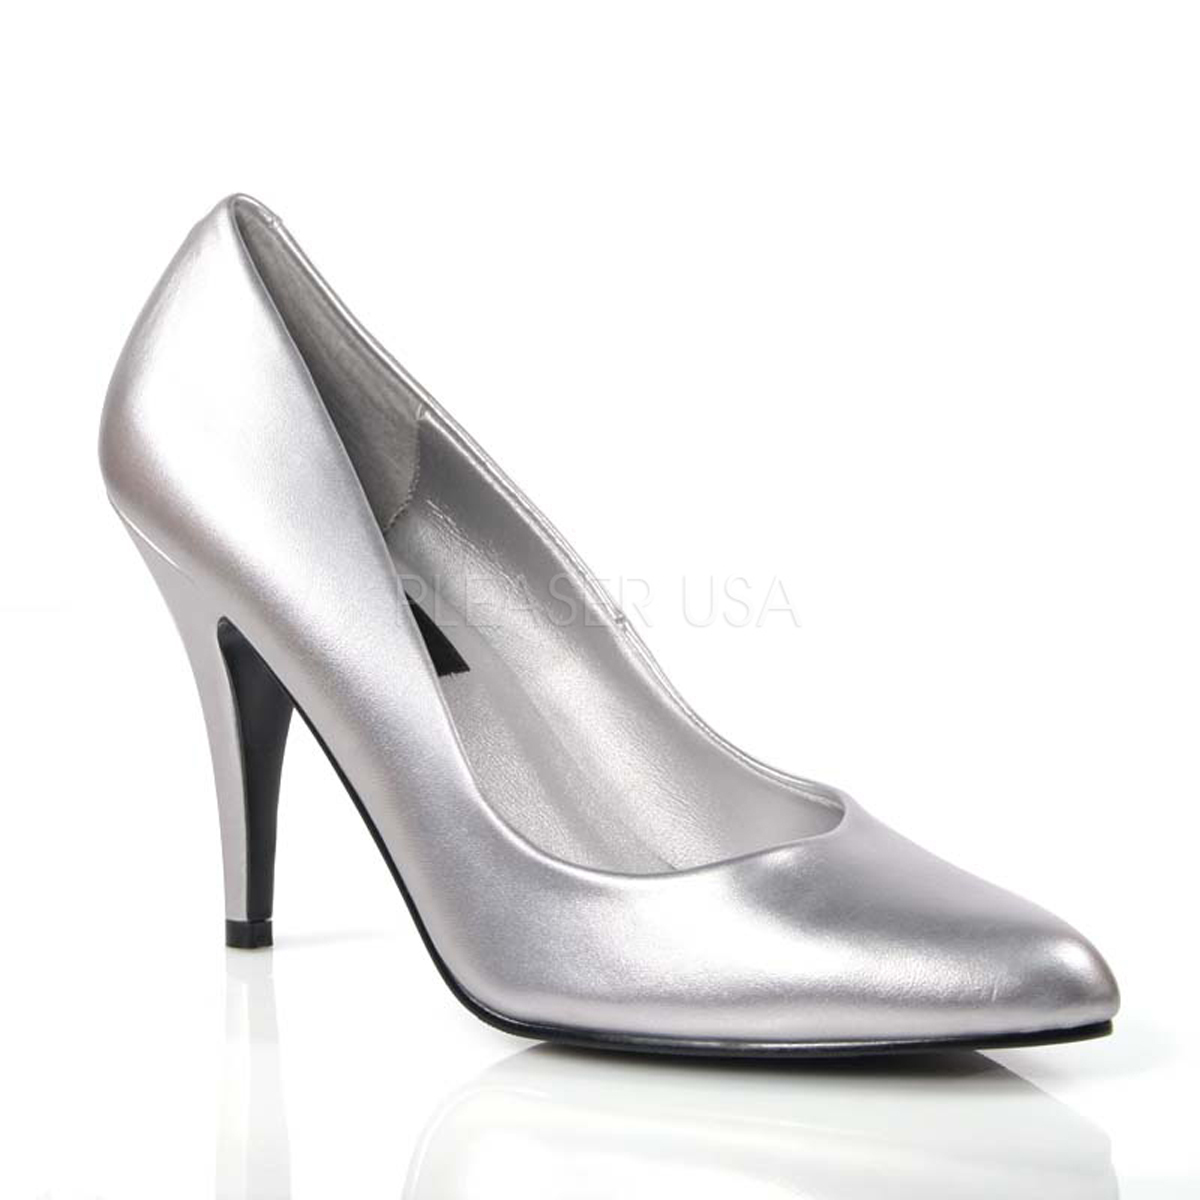 4 Inch Stiletto Heel Pump